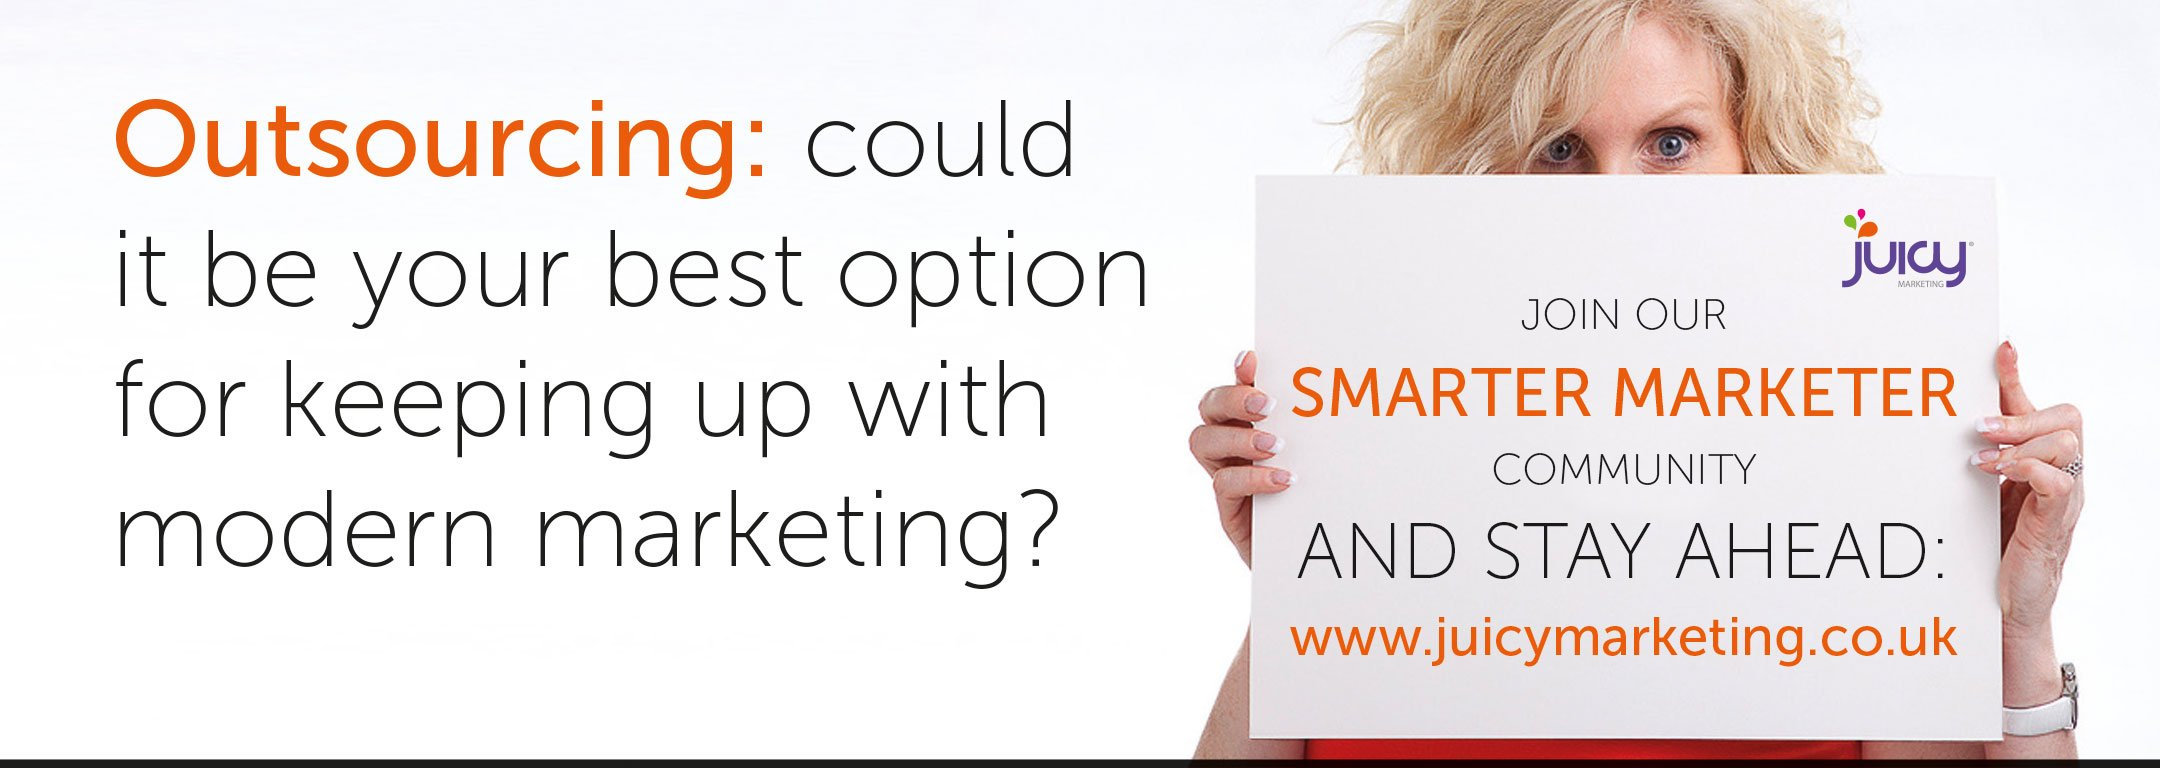 Outsourcing: could it be your best option for keeping up with modern marketing?